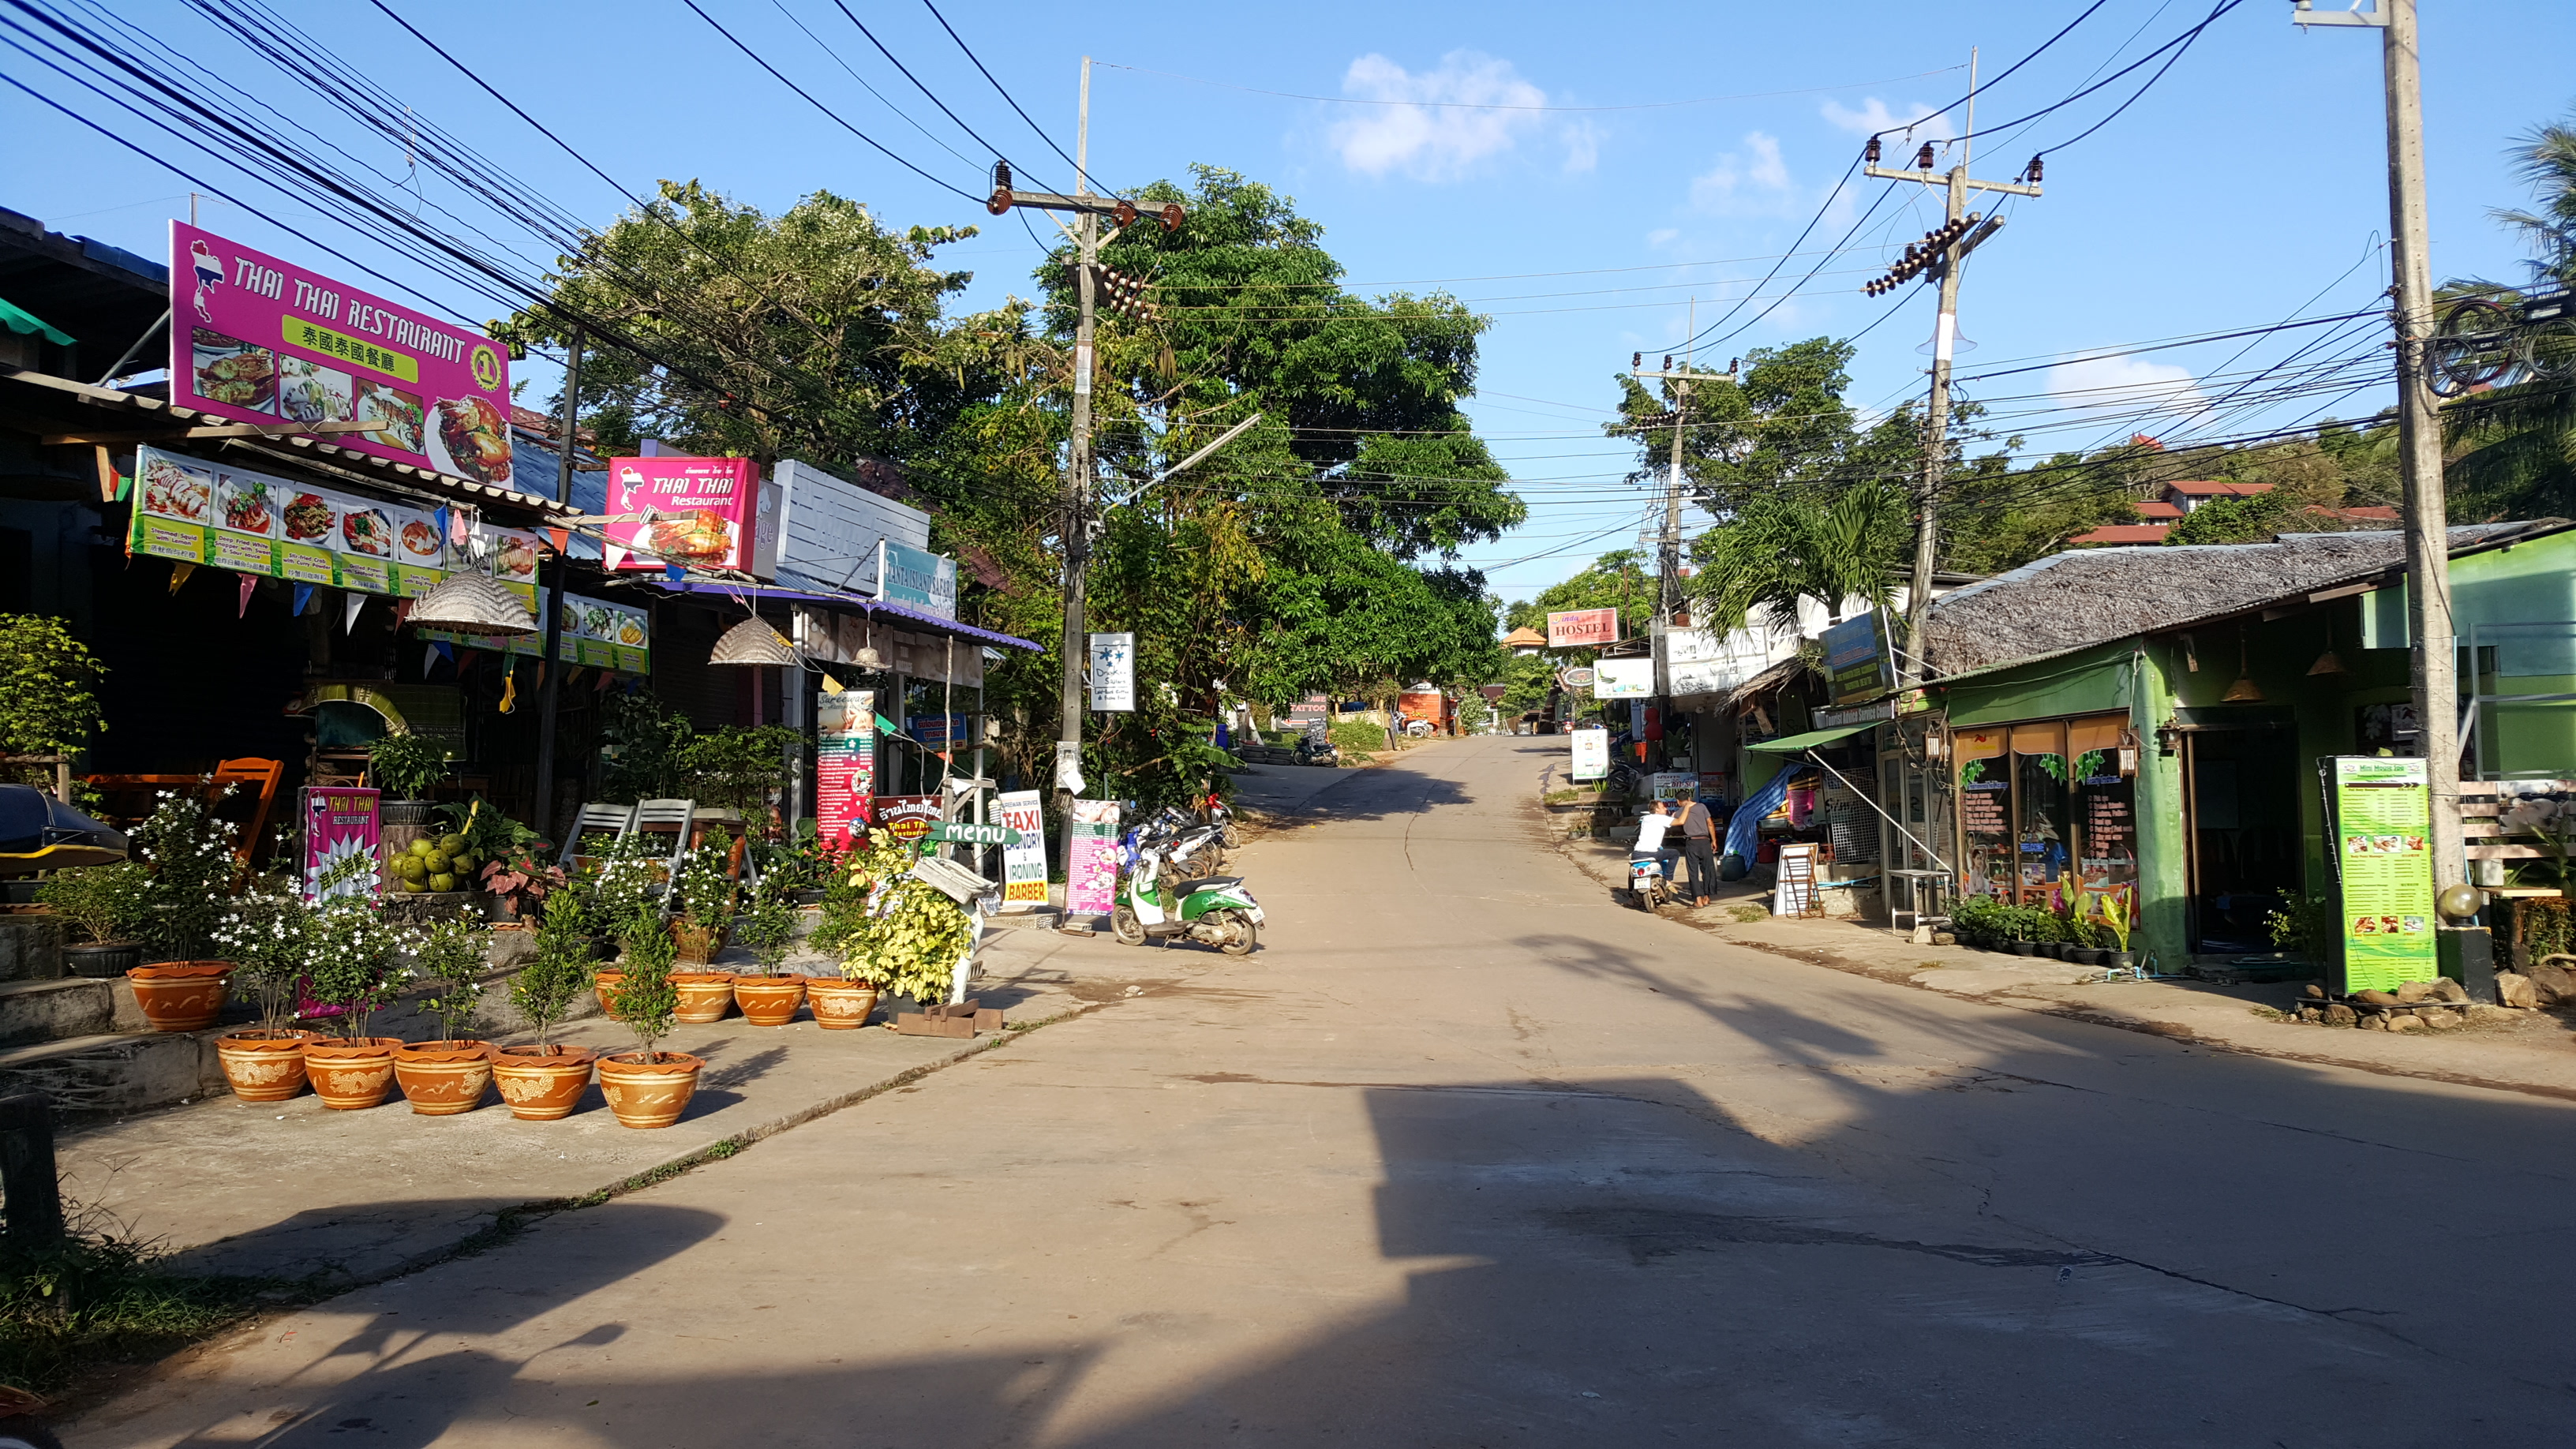 A few shops and restaurants border the road with no passing traffic. The buildings are basic, single storey structures with plant pots and bright signs outside